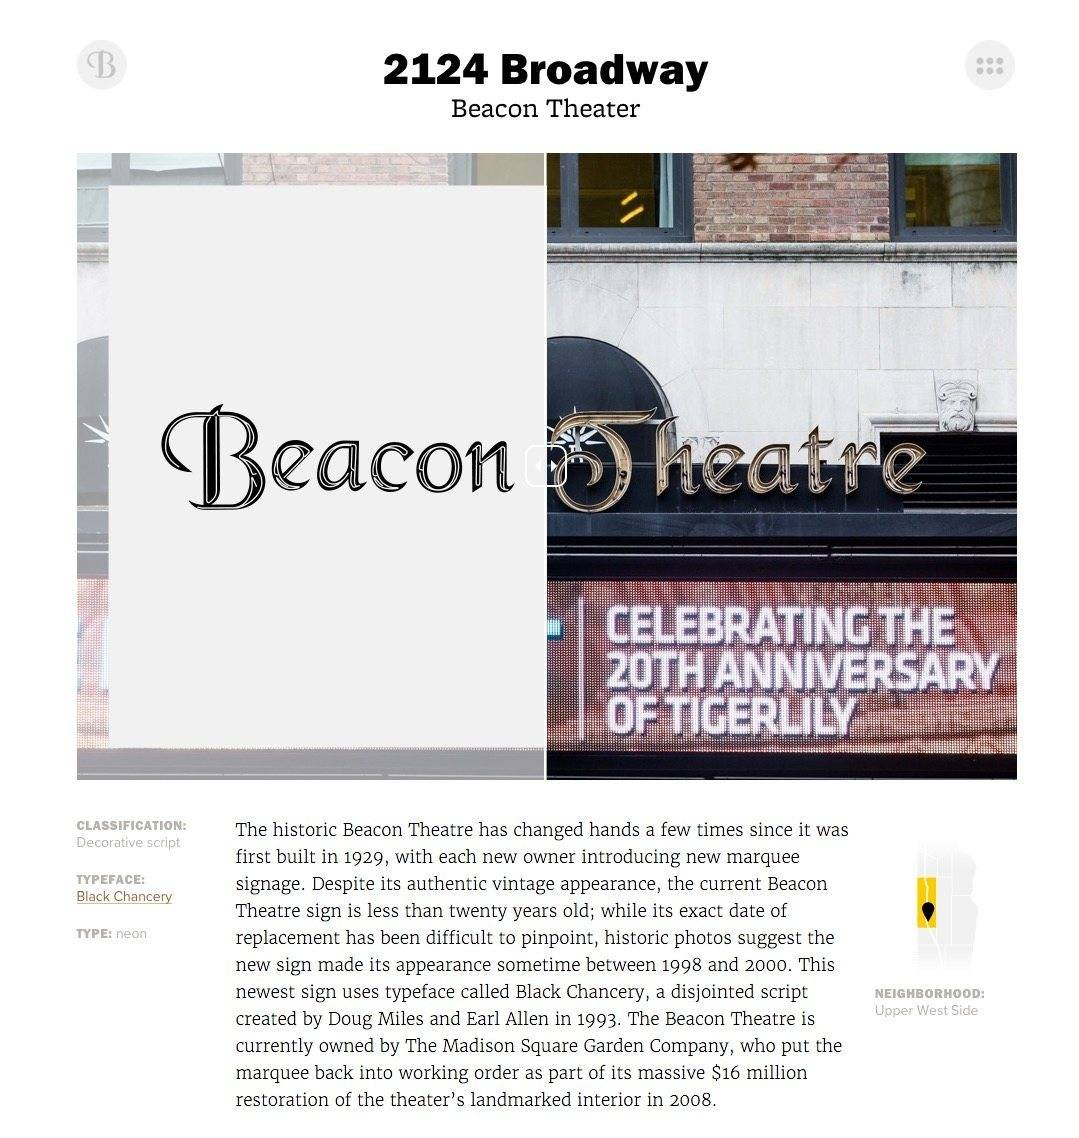 The Typography A to Z of Broadway - 2124 Broadway Beacon Theater